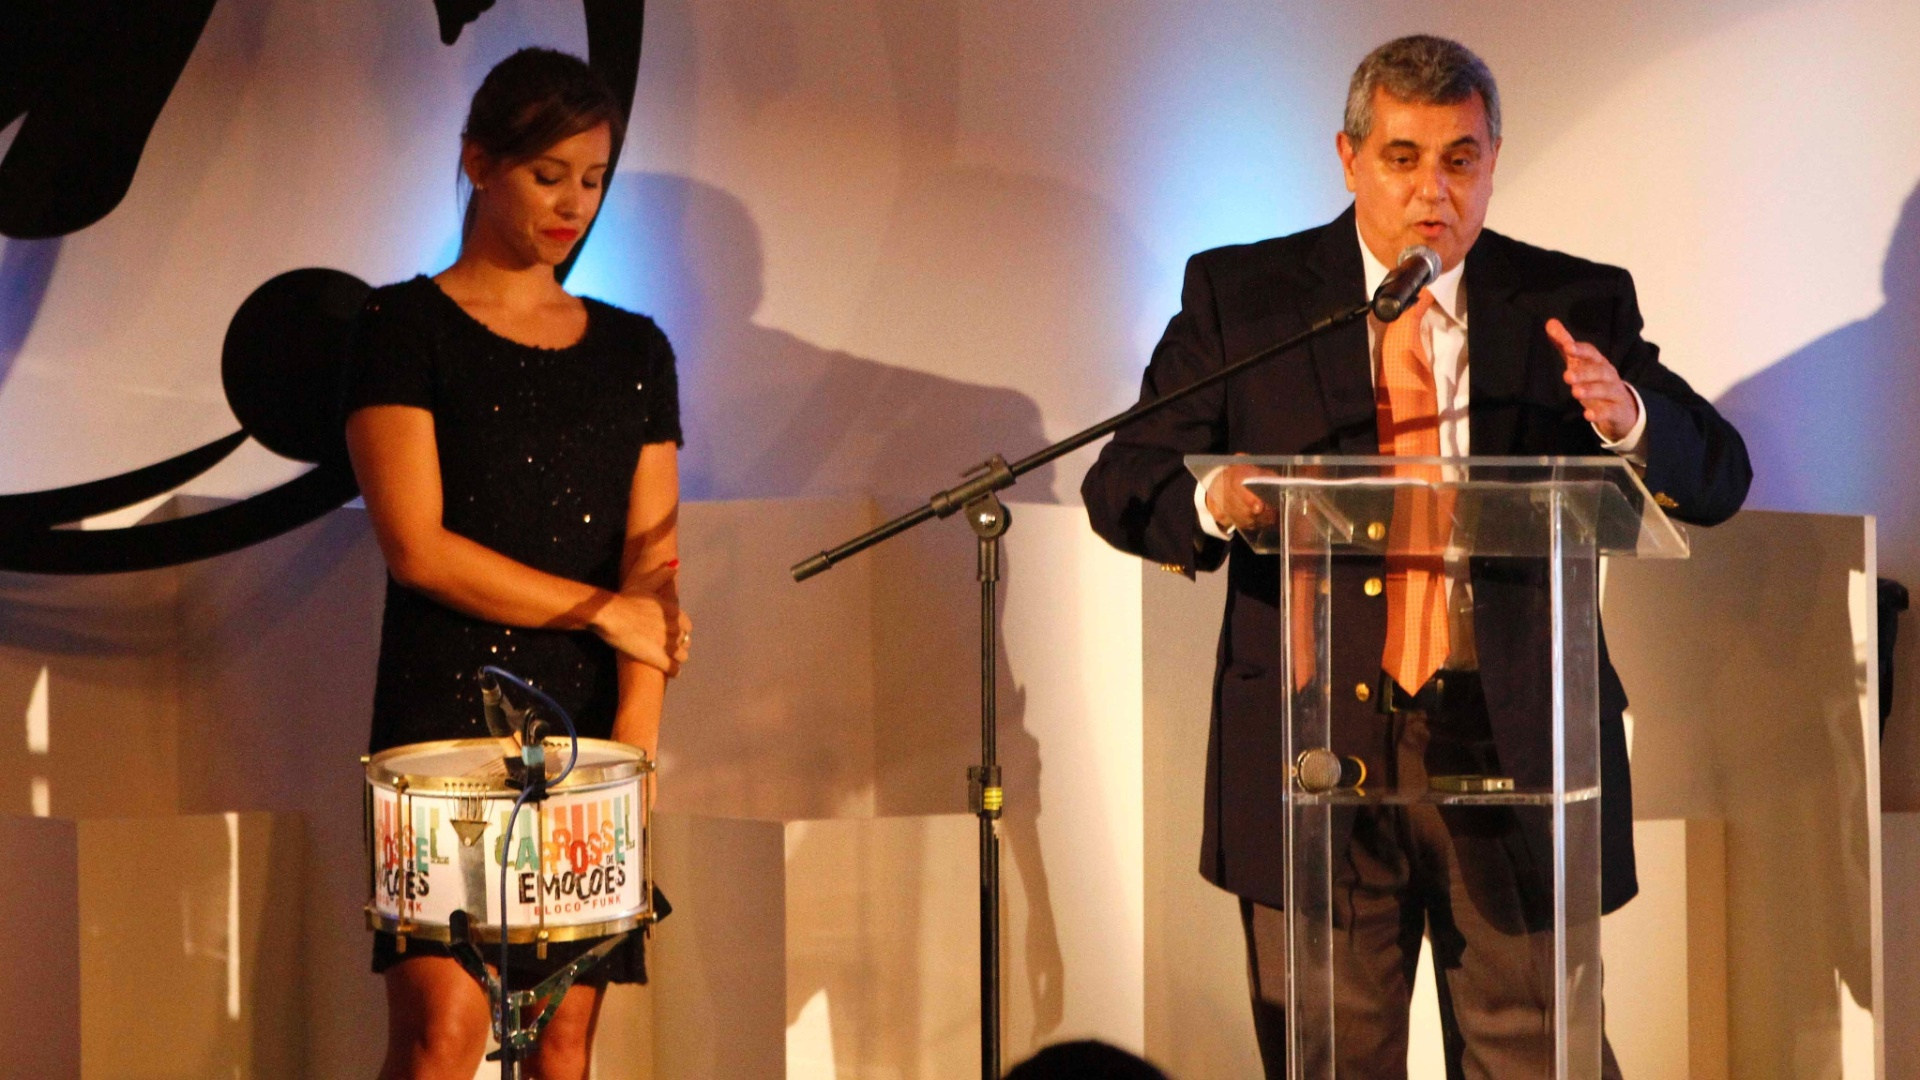 20.mai.2013 - Presidente da Federao Carioca de Futebol, Rubens Lopes discursa na festa de premiao do campeonato ao lado da apresentadora da TV Globo Cristiane Dias